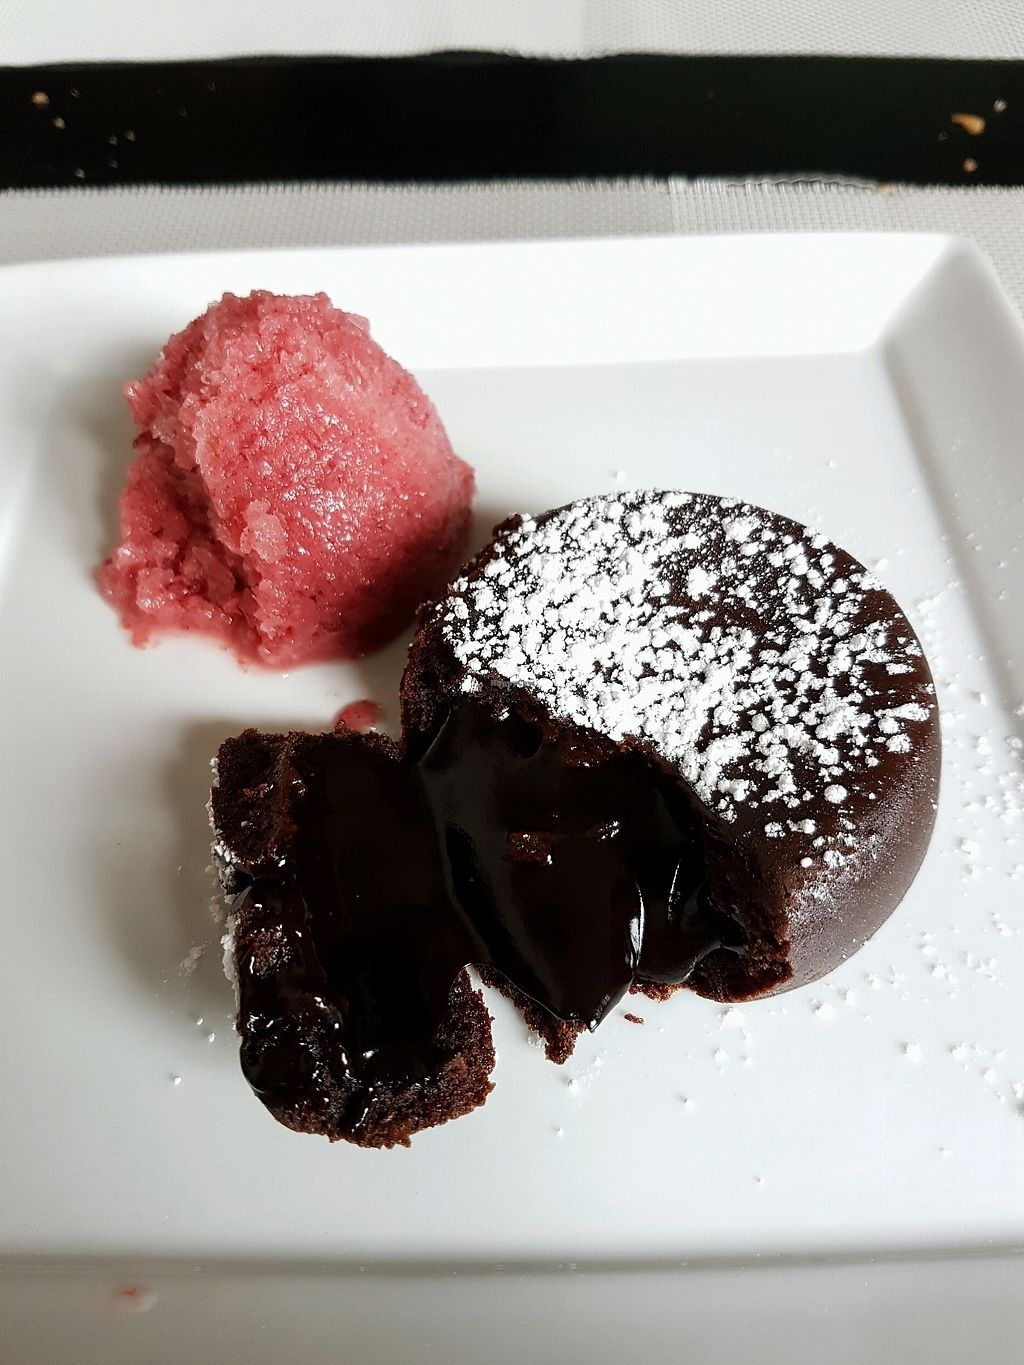 """Photo of Seitan Urban Bistro  by <a href=""""/members/profile/Olena"""">Olena</a> <br/>chocolate desert  <br/> April 7, 2018  - <a href='/contact/abuse/image/70536/381759'>Report</a>"""